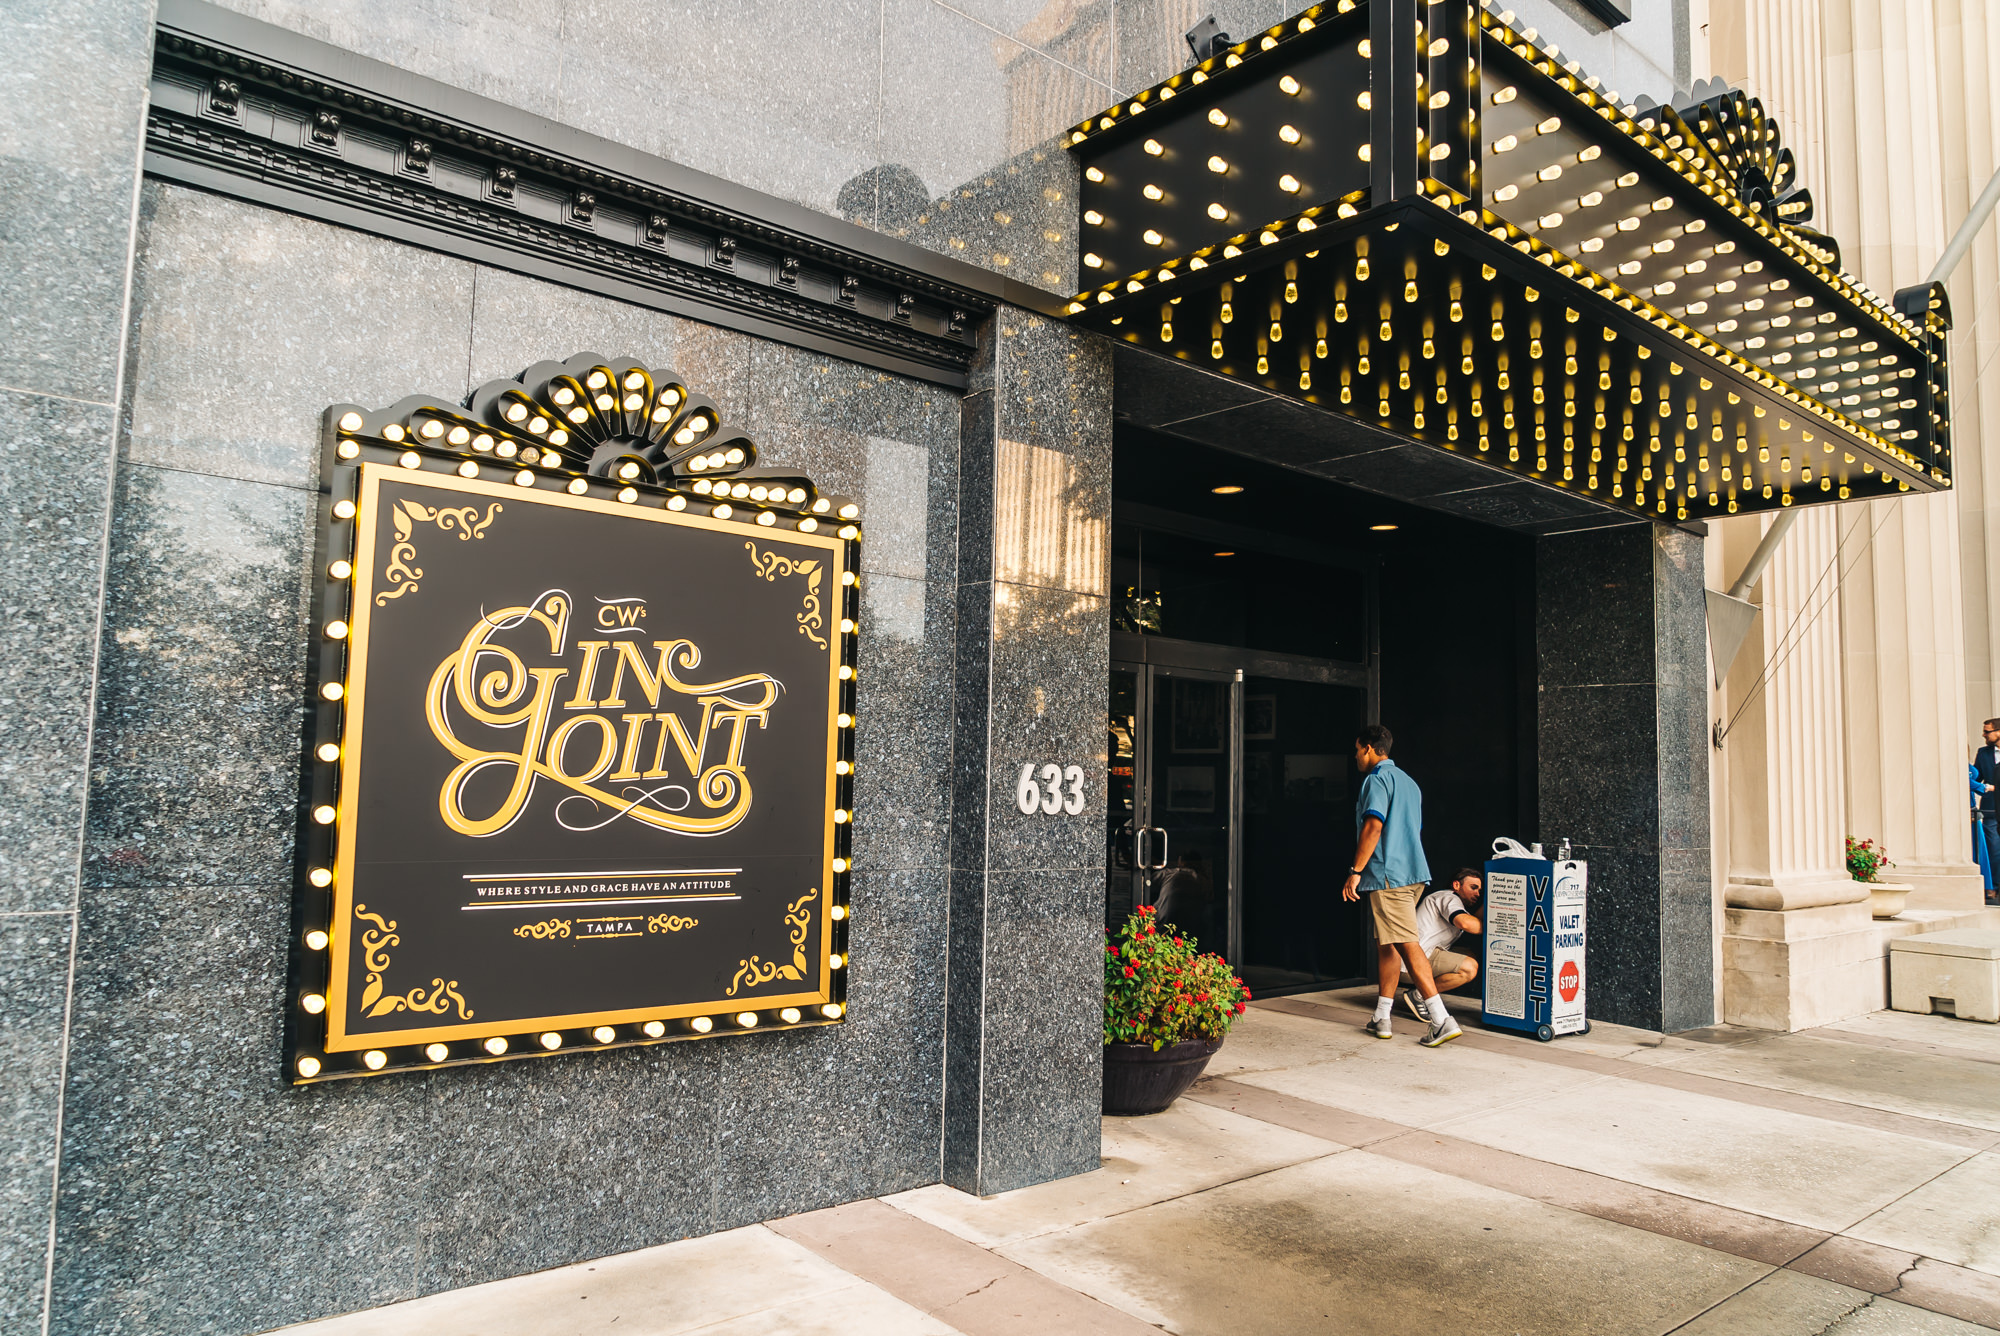 C.W.'s Gin Joint in Tampa, Florida